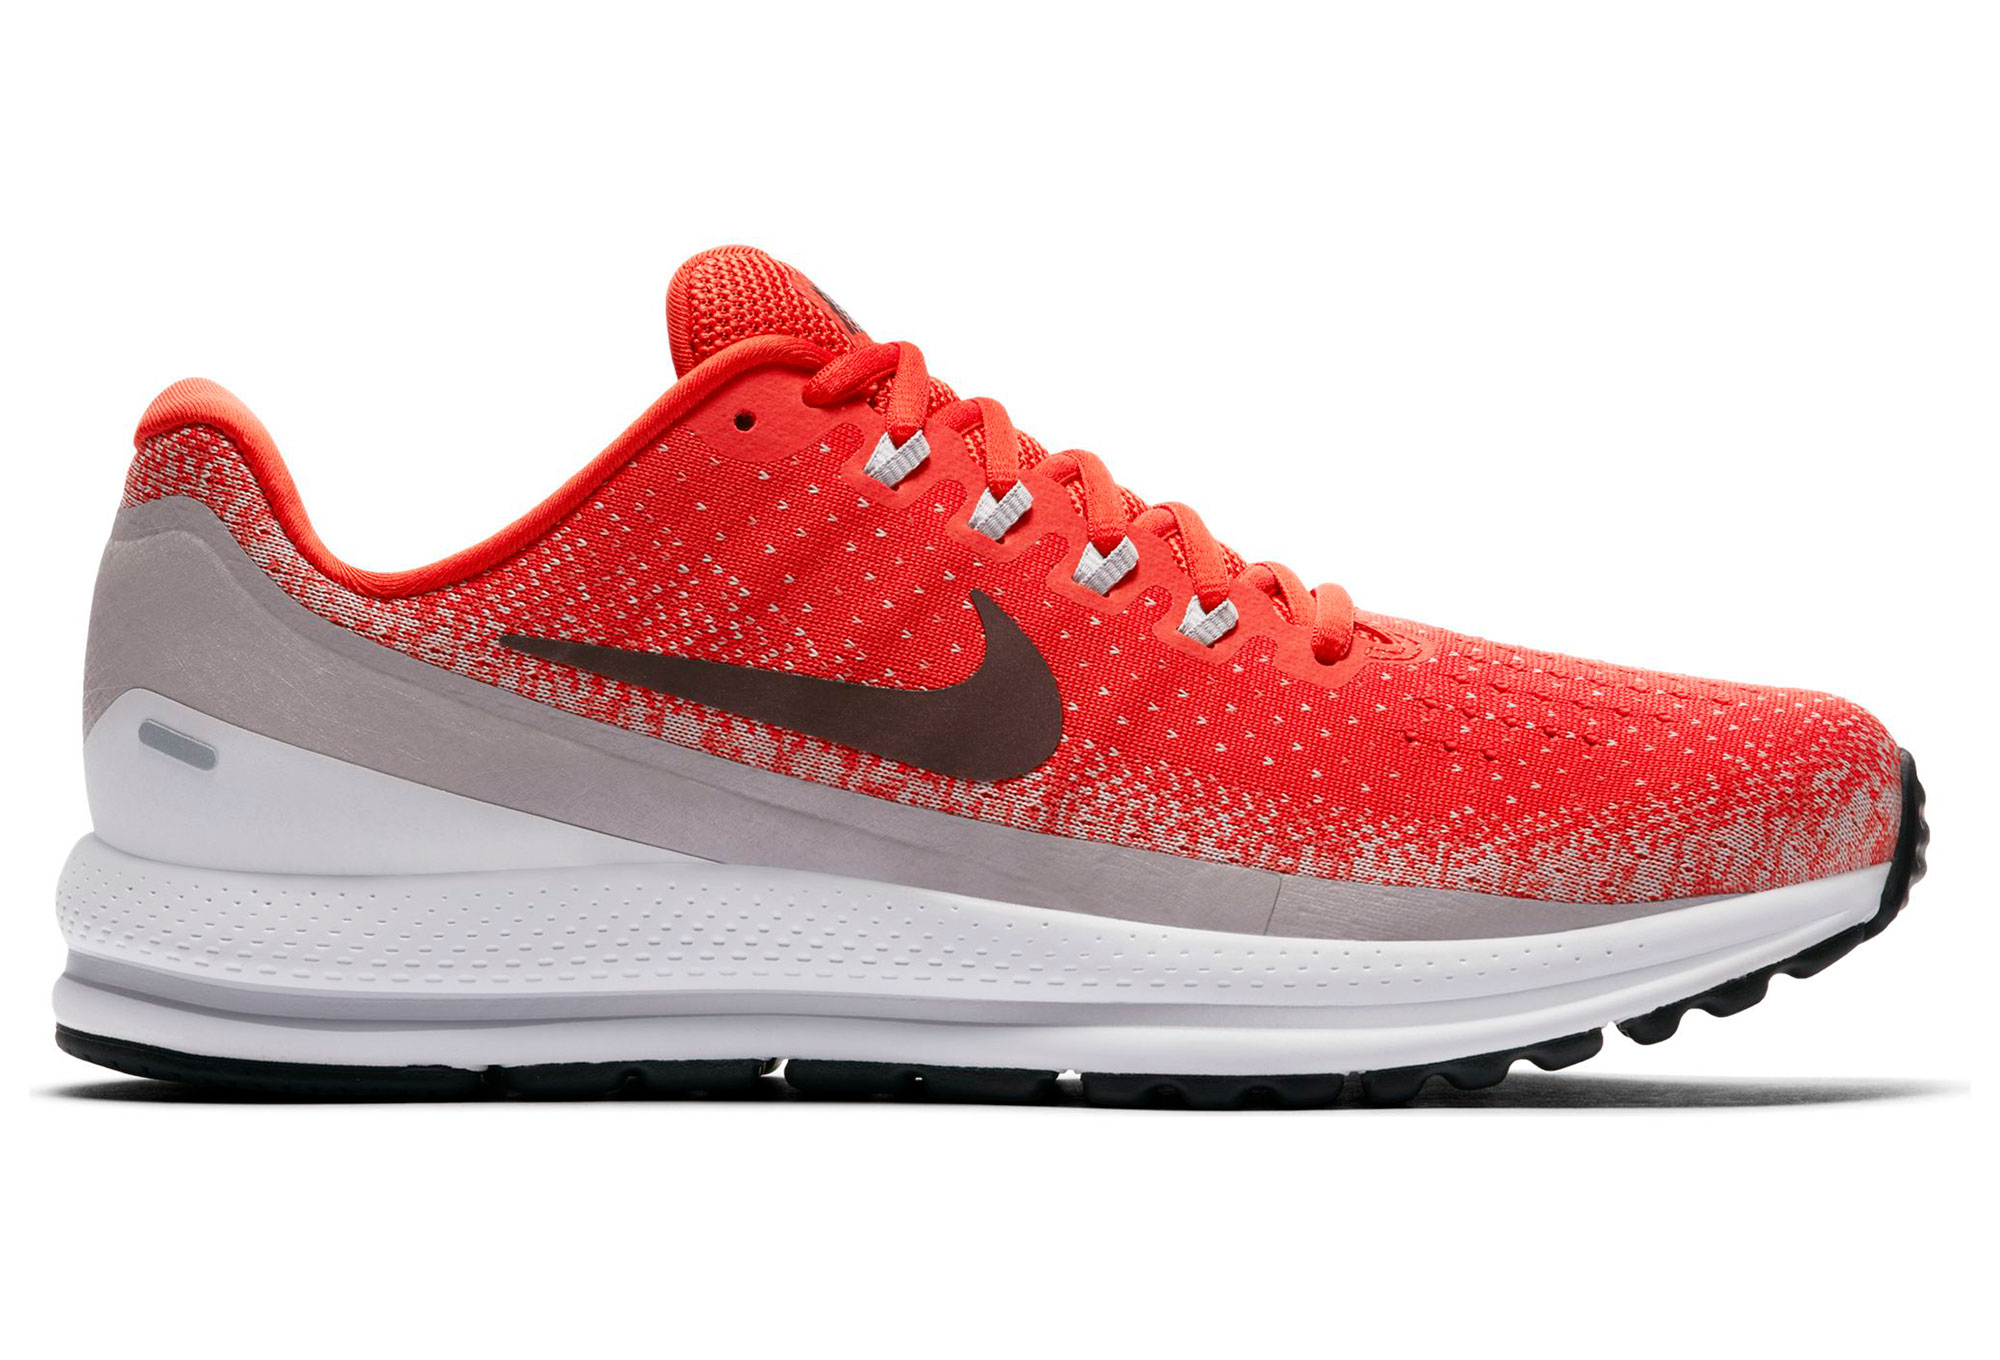 super popular 6fe6b eee65 Chaussures de Running Nike Air Zoom Vomero 13 Rouge   Blanc